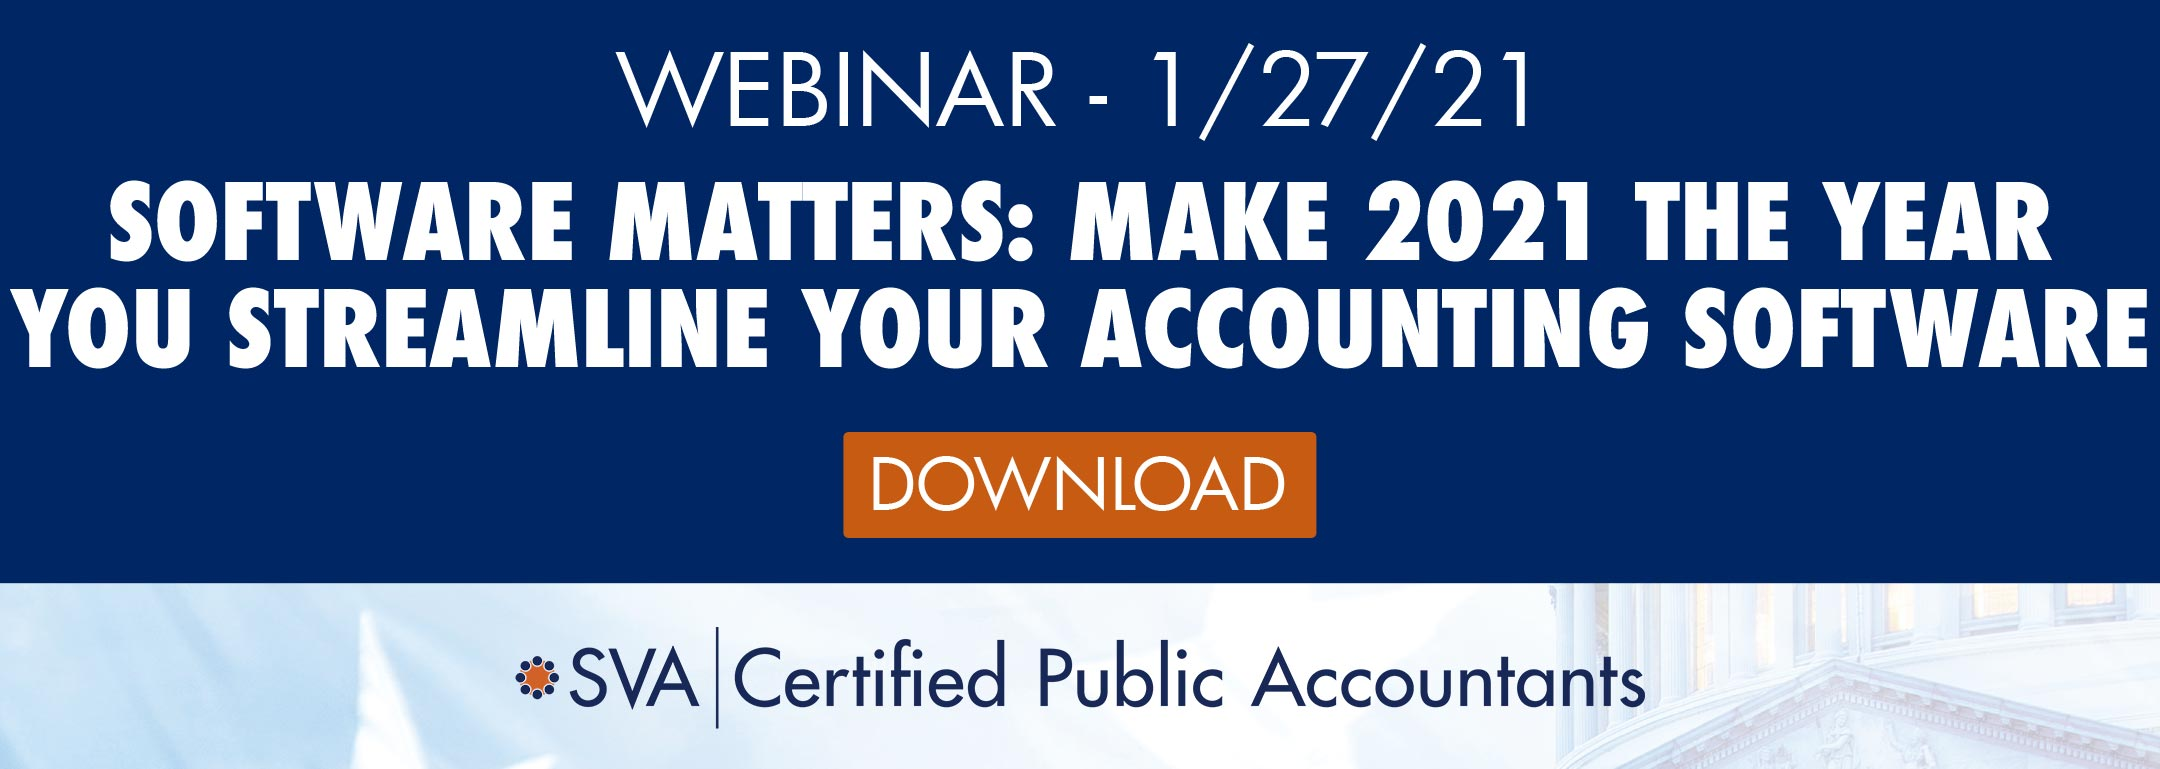 Software Matters: Make 2021 the Year You Streamline Your Accounting Software